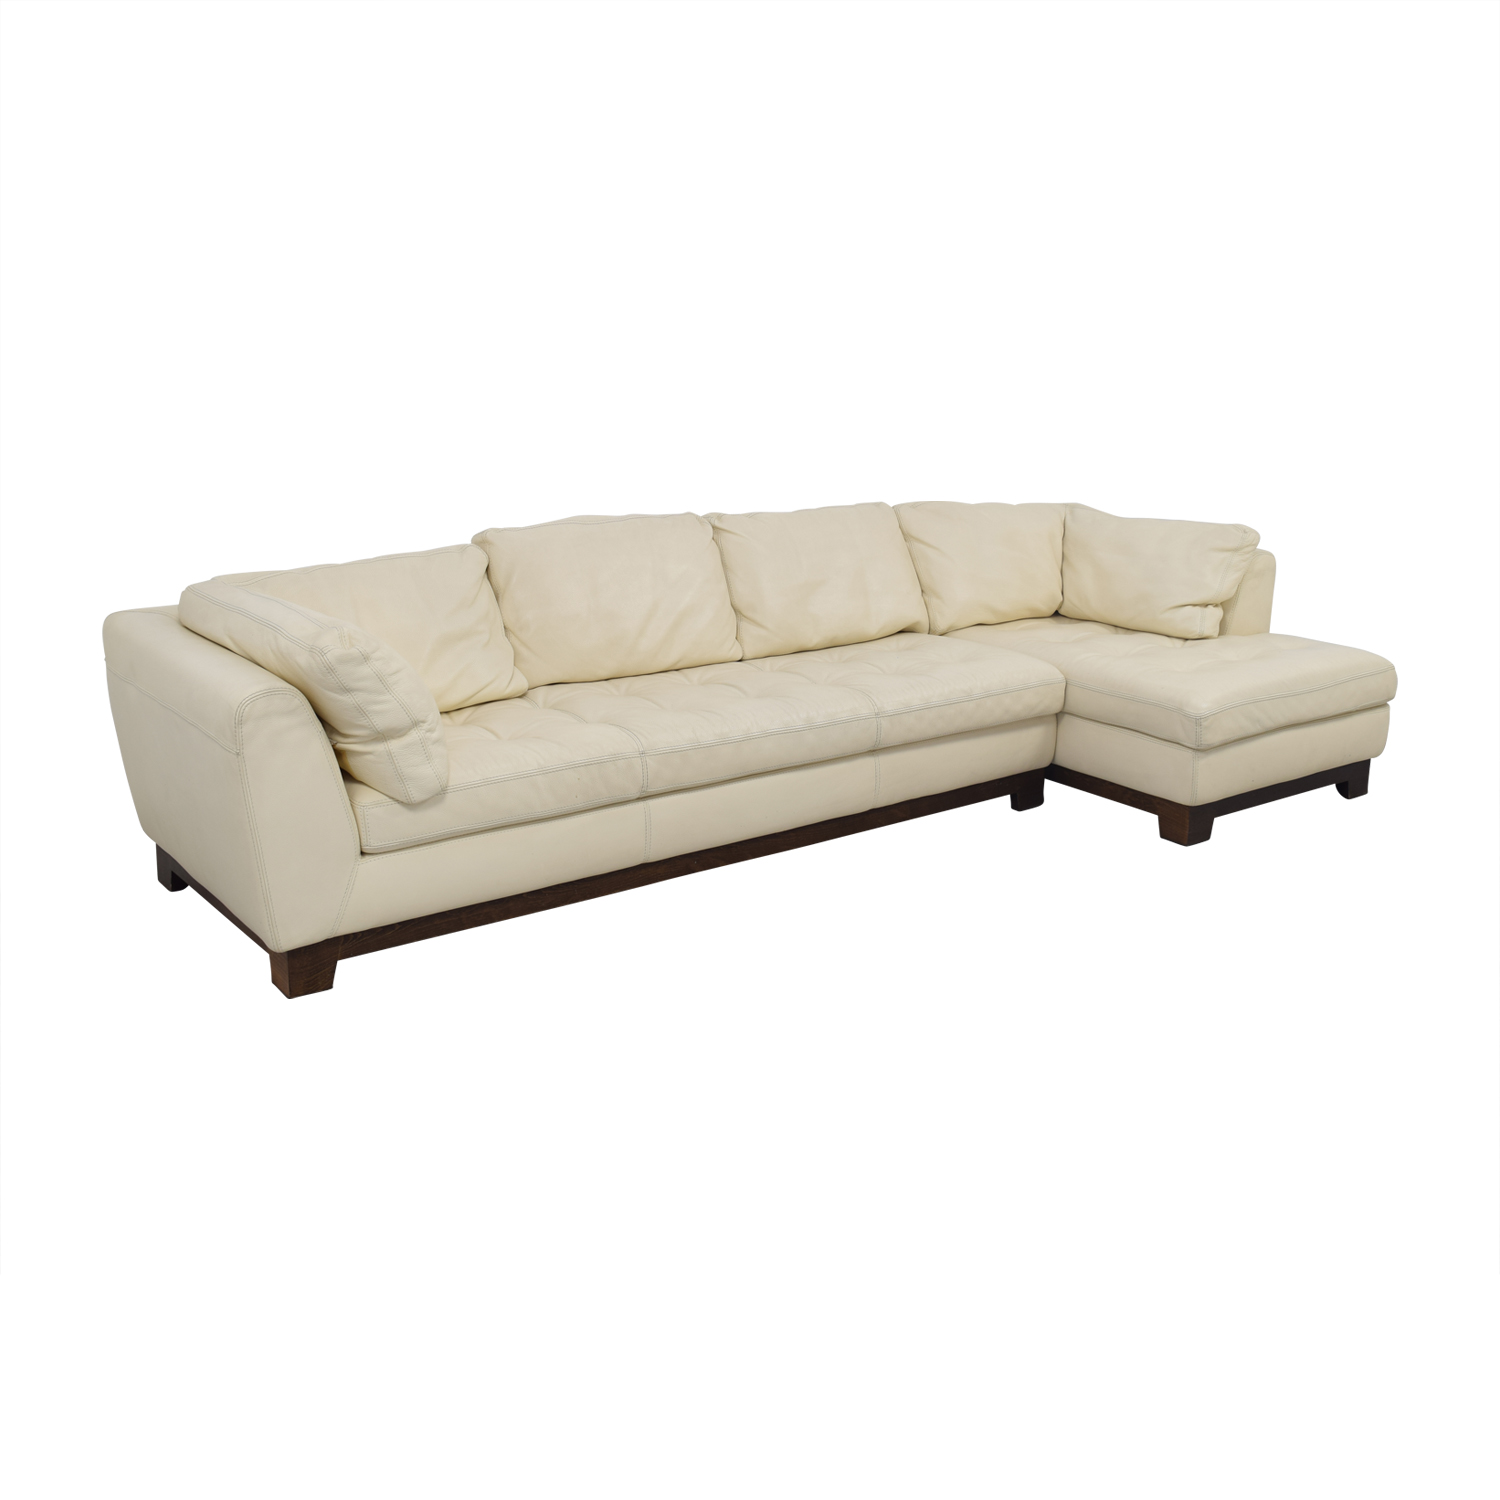 76 off roche bobois roche bobois cream leather chaise sectional sofas. Black Bedroom Furniture Sets. Home Design Ideas